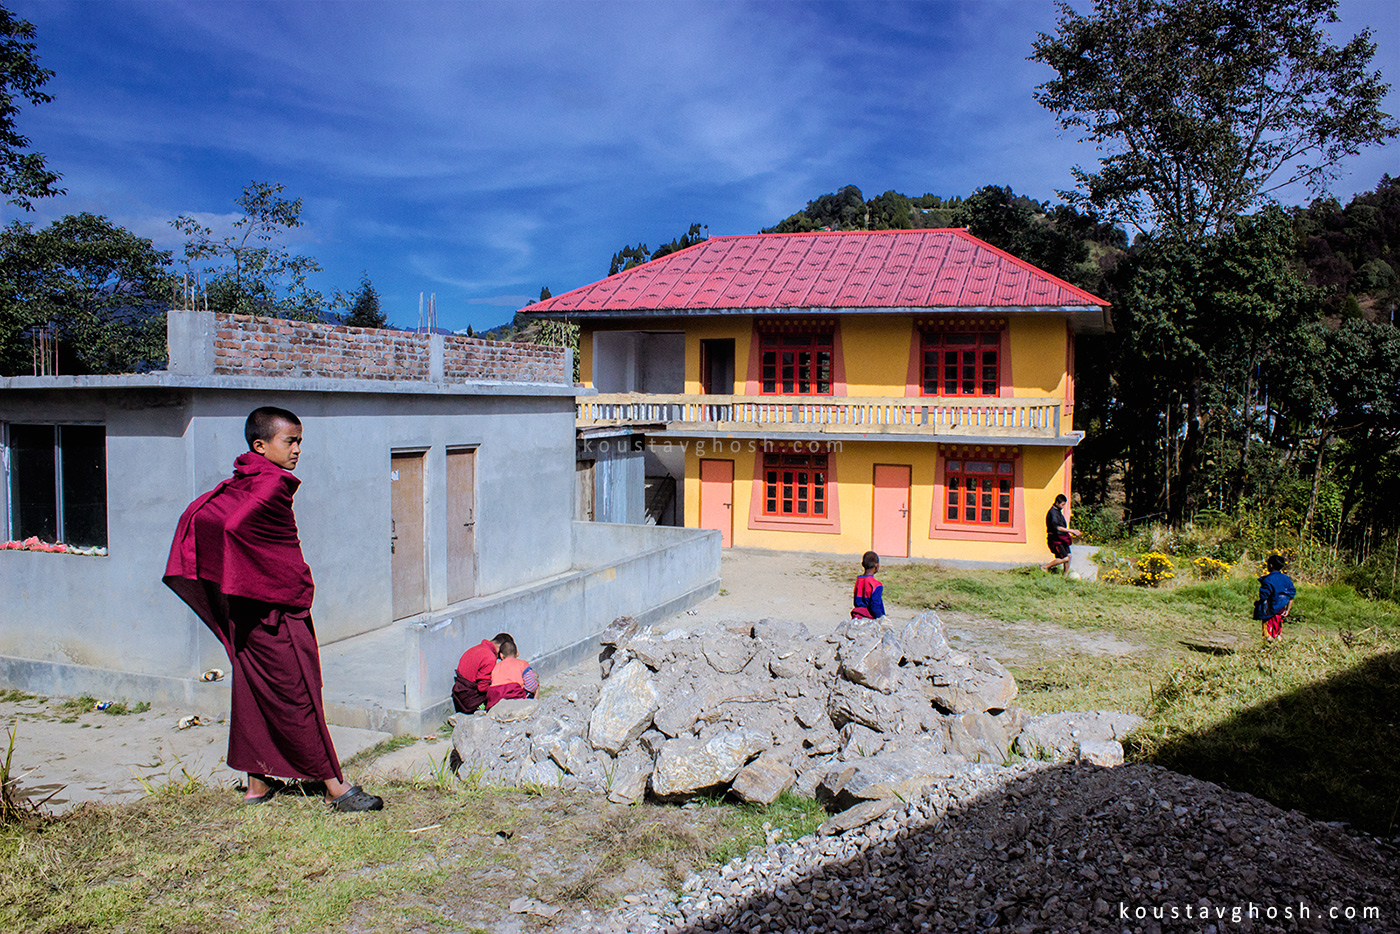 Before leaving Okhrey, Bandhu took me to another monastery.